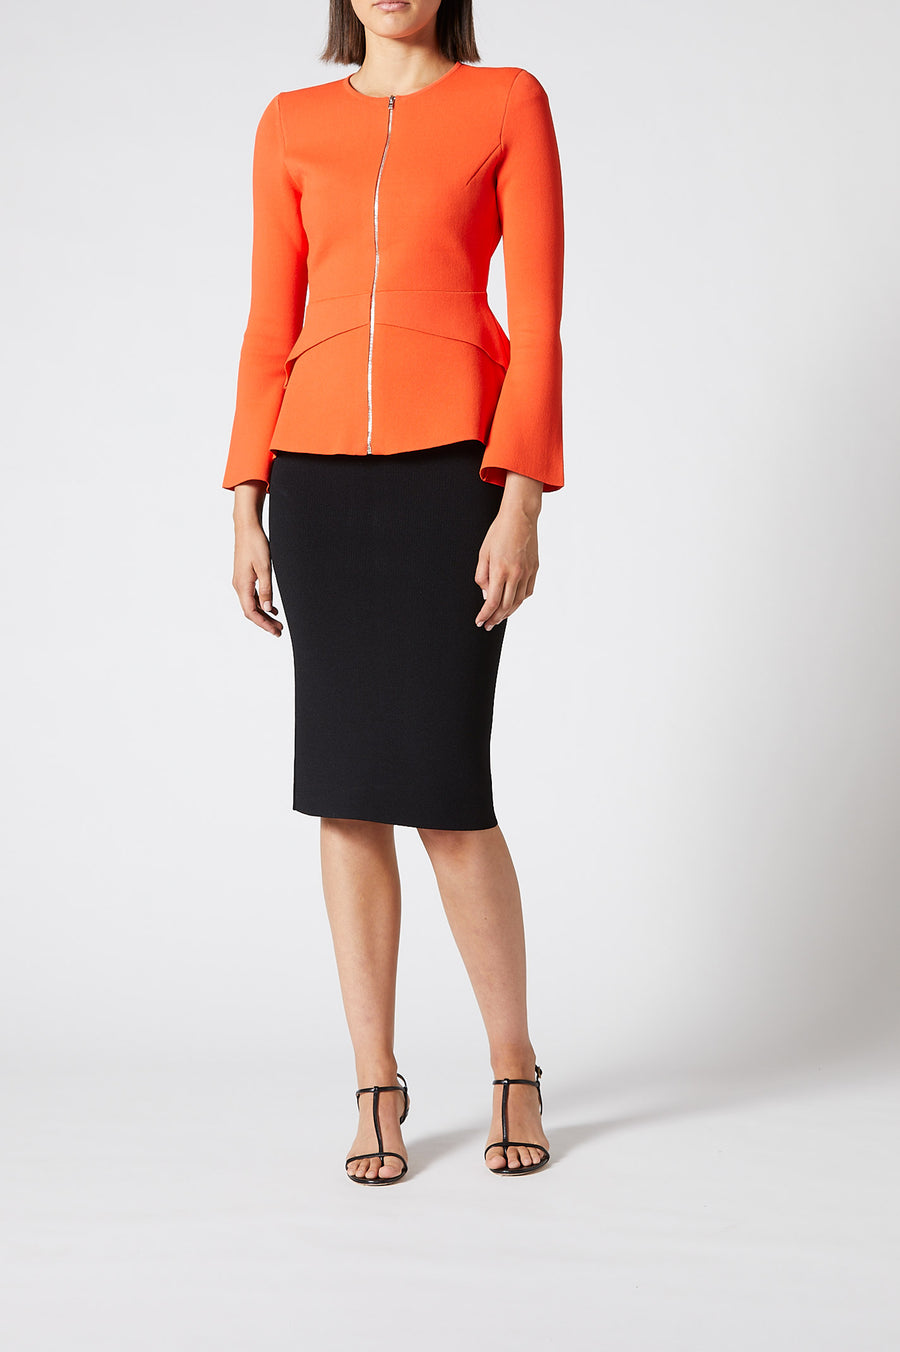 Crepe Knit Tailored Peplum Jacket Tangerine, zip at the front, slim fit